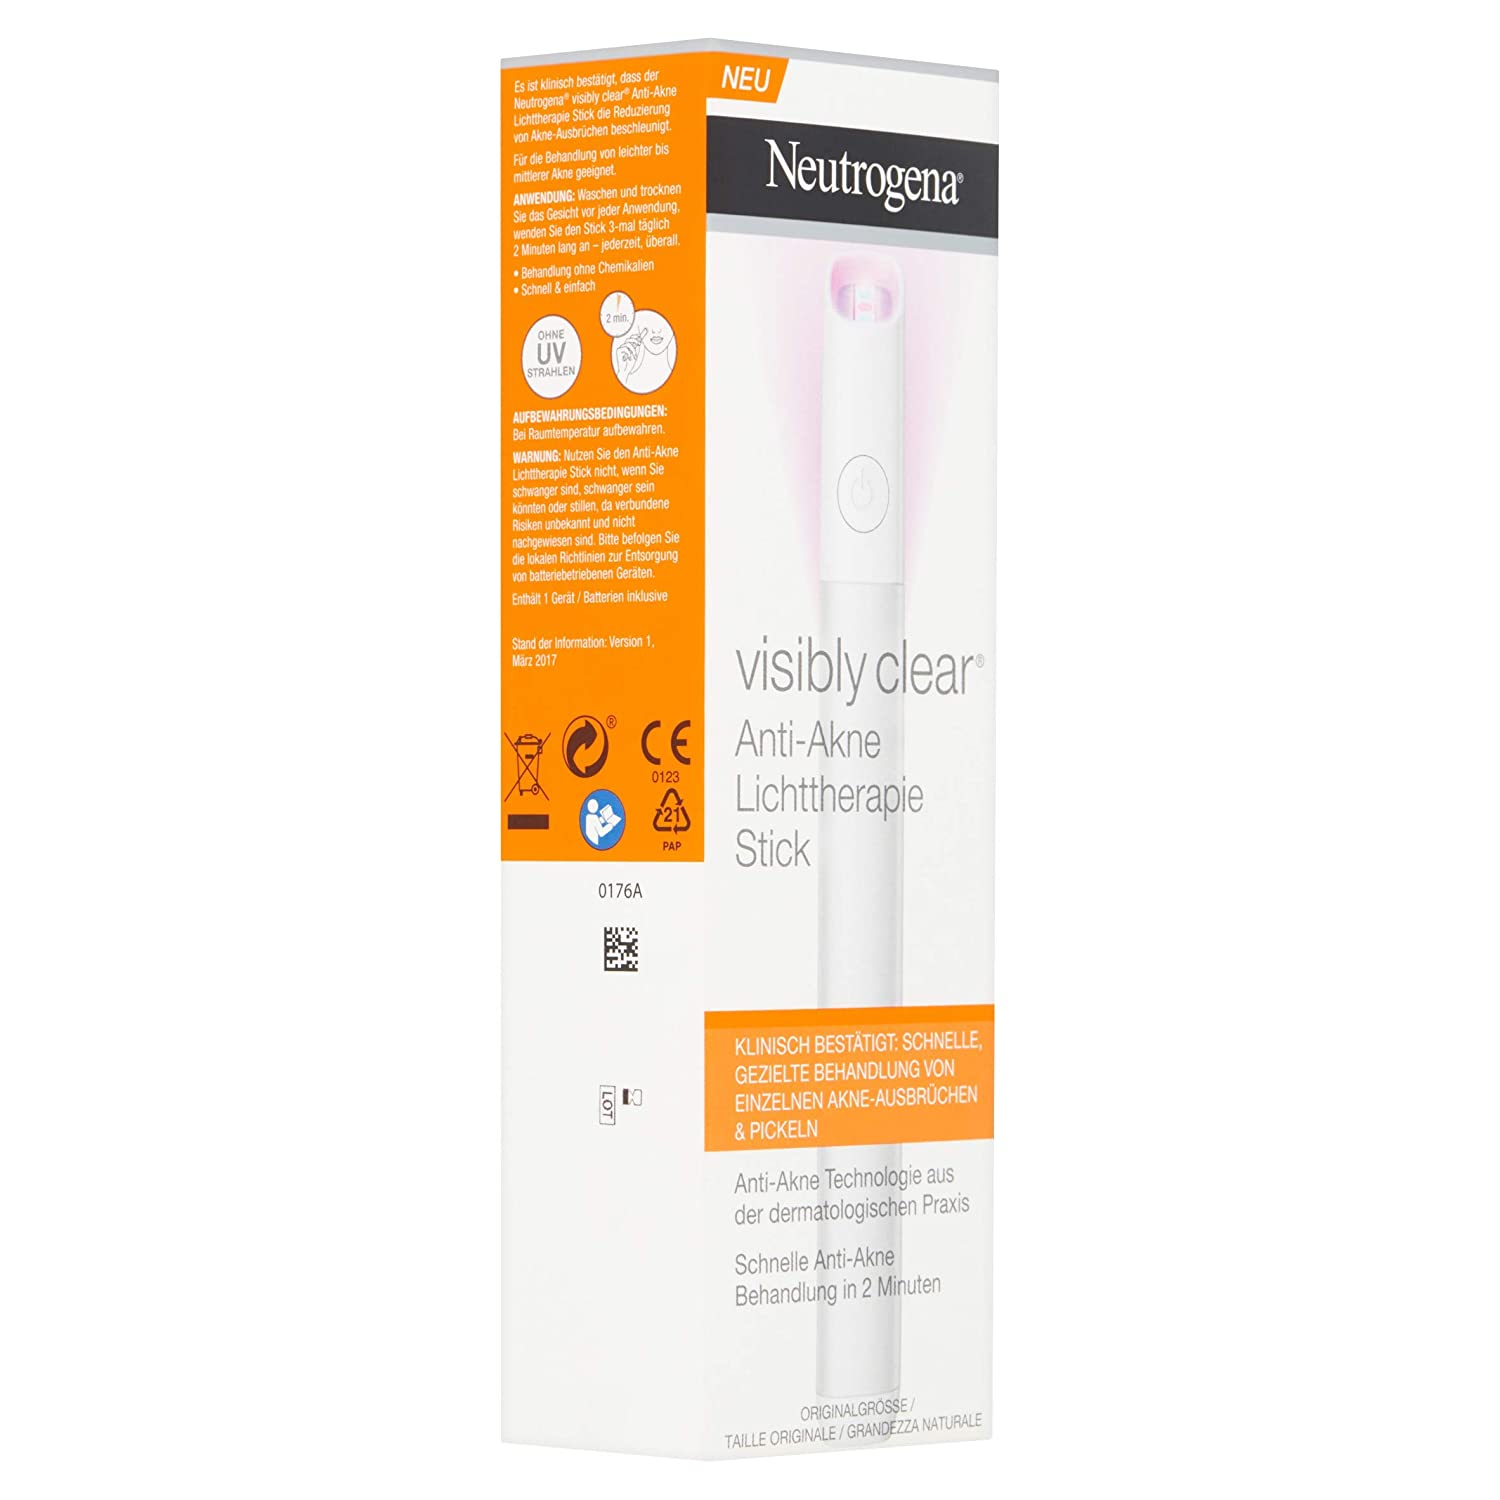 Neutrogena visibly Clear Anti acné lichttheraphie Stick: Amazon.es: Belleza